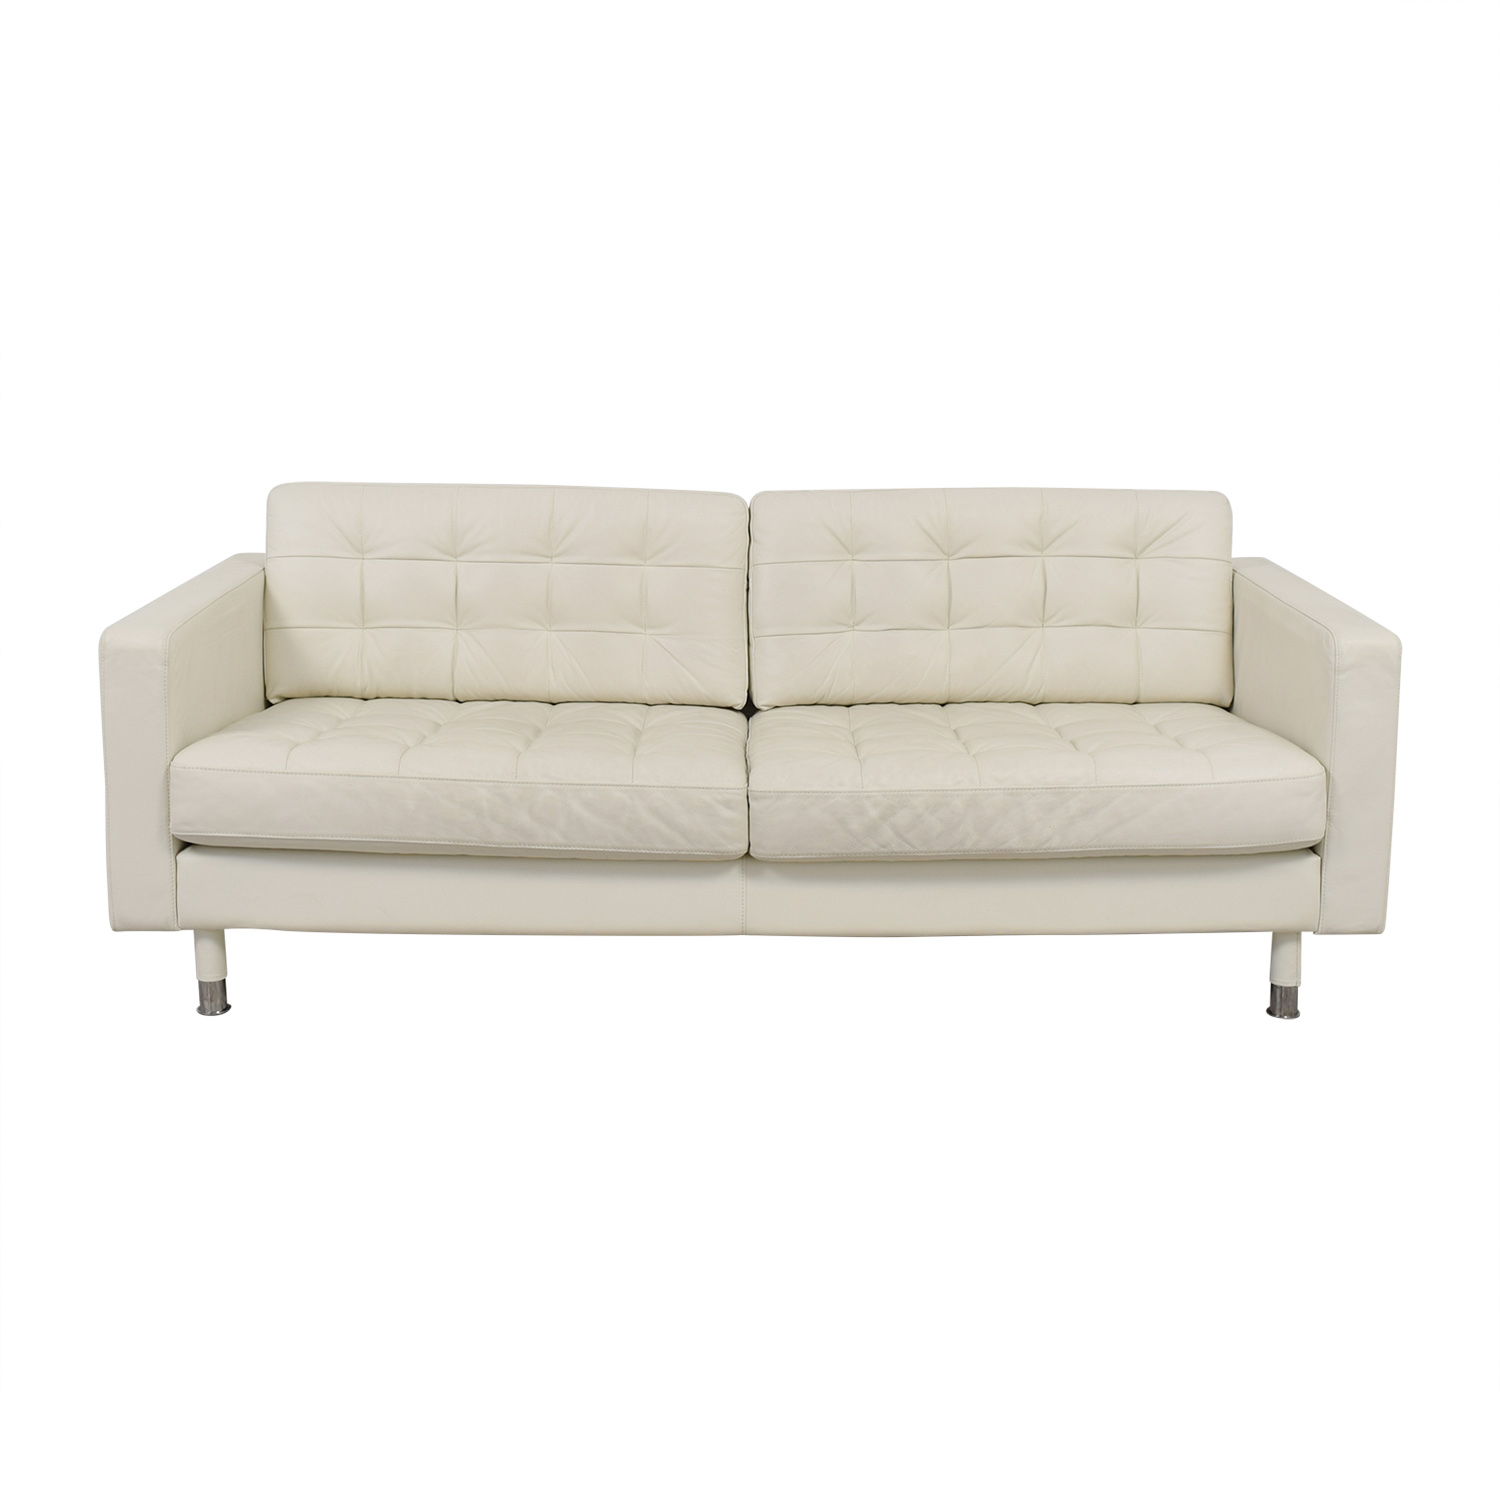 white tufted leather sofa pallet ideas ikea faux couches chairs